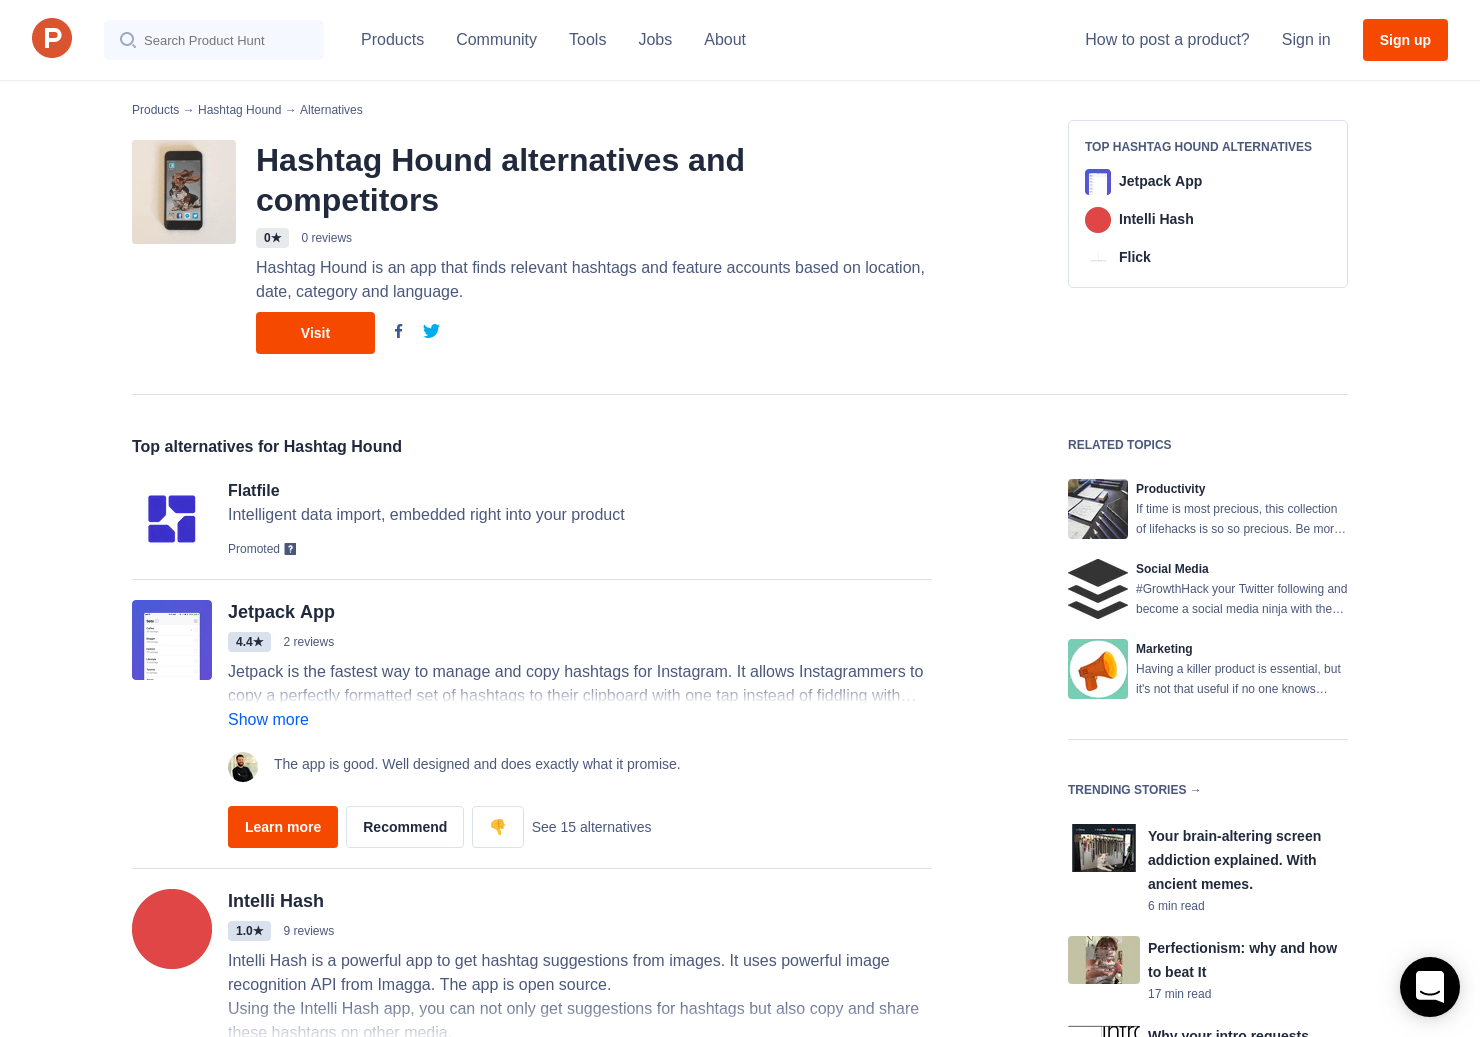 9 Alternatives to Hashtag Hound | Product Hunt